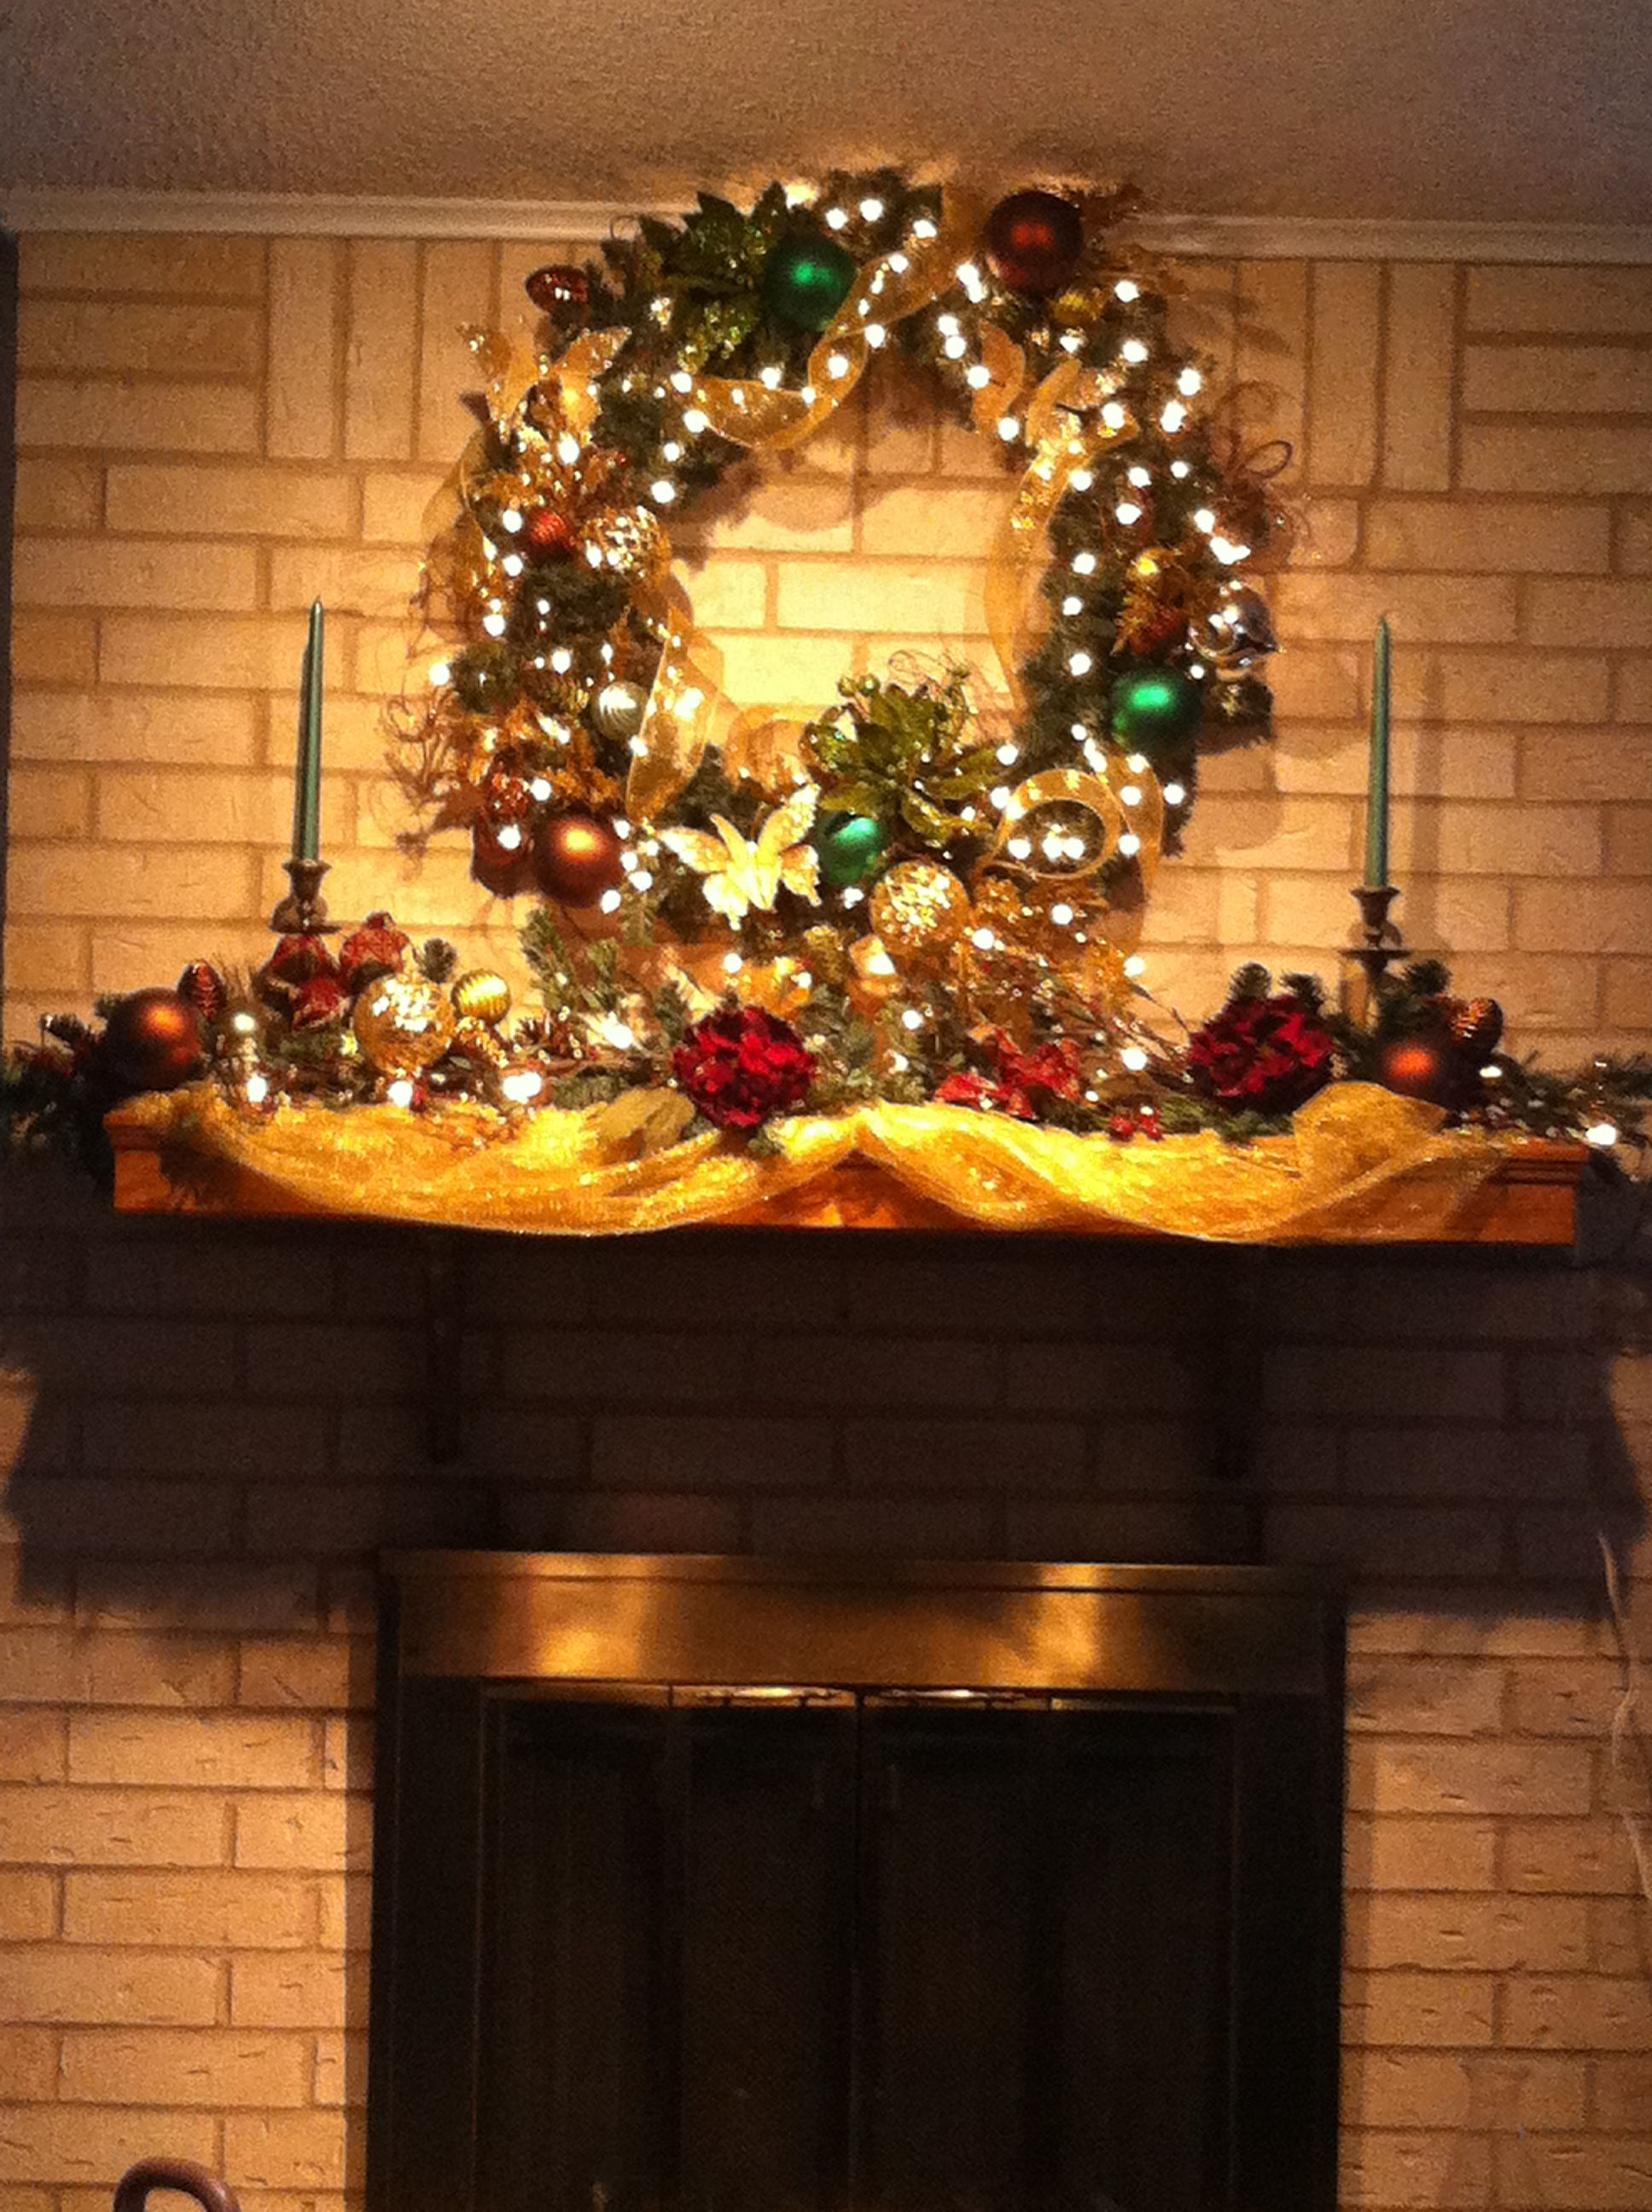 Hobby Lobby Christmas Wreaths.Prelite Wreath With Gold And Green Decorations From Hobby